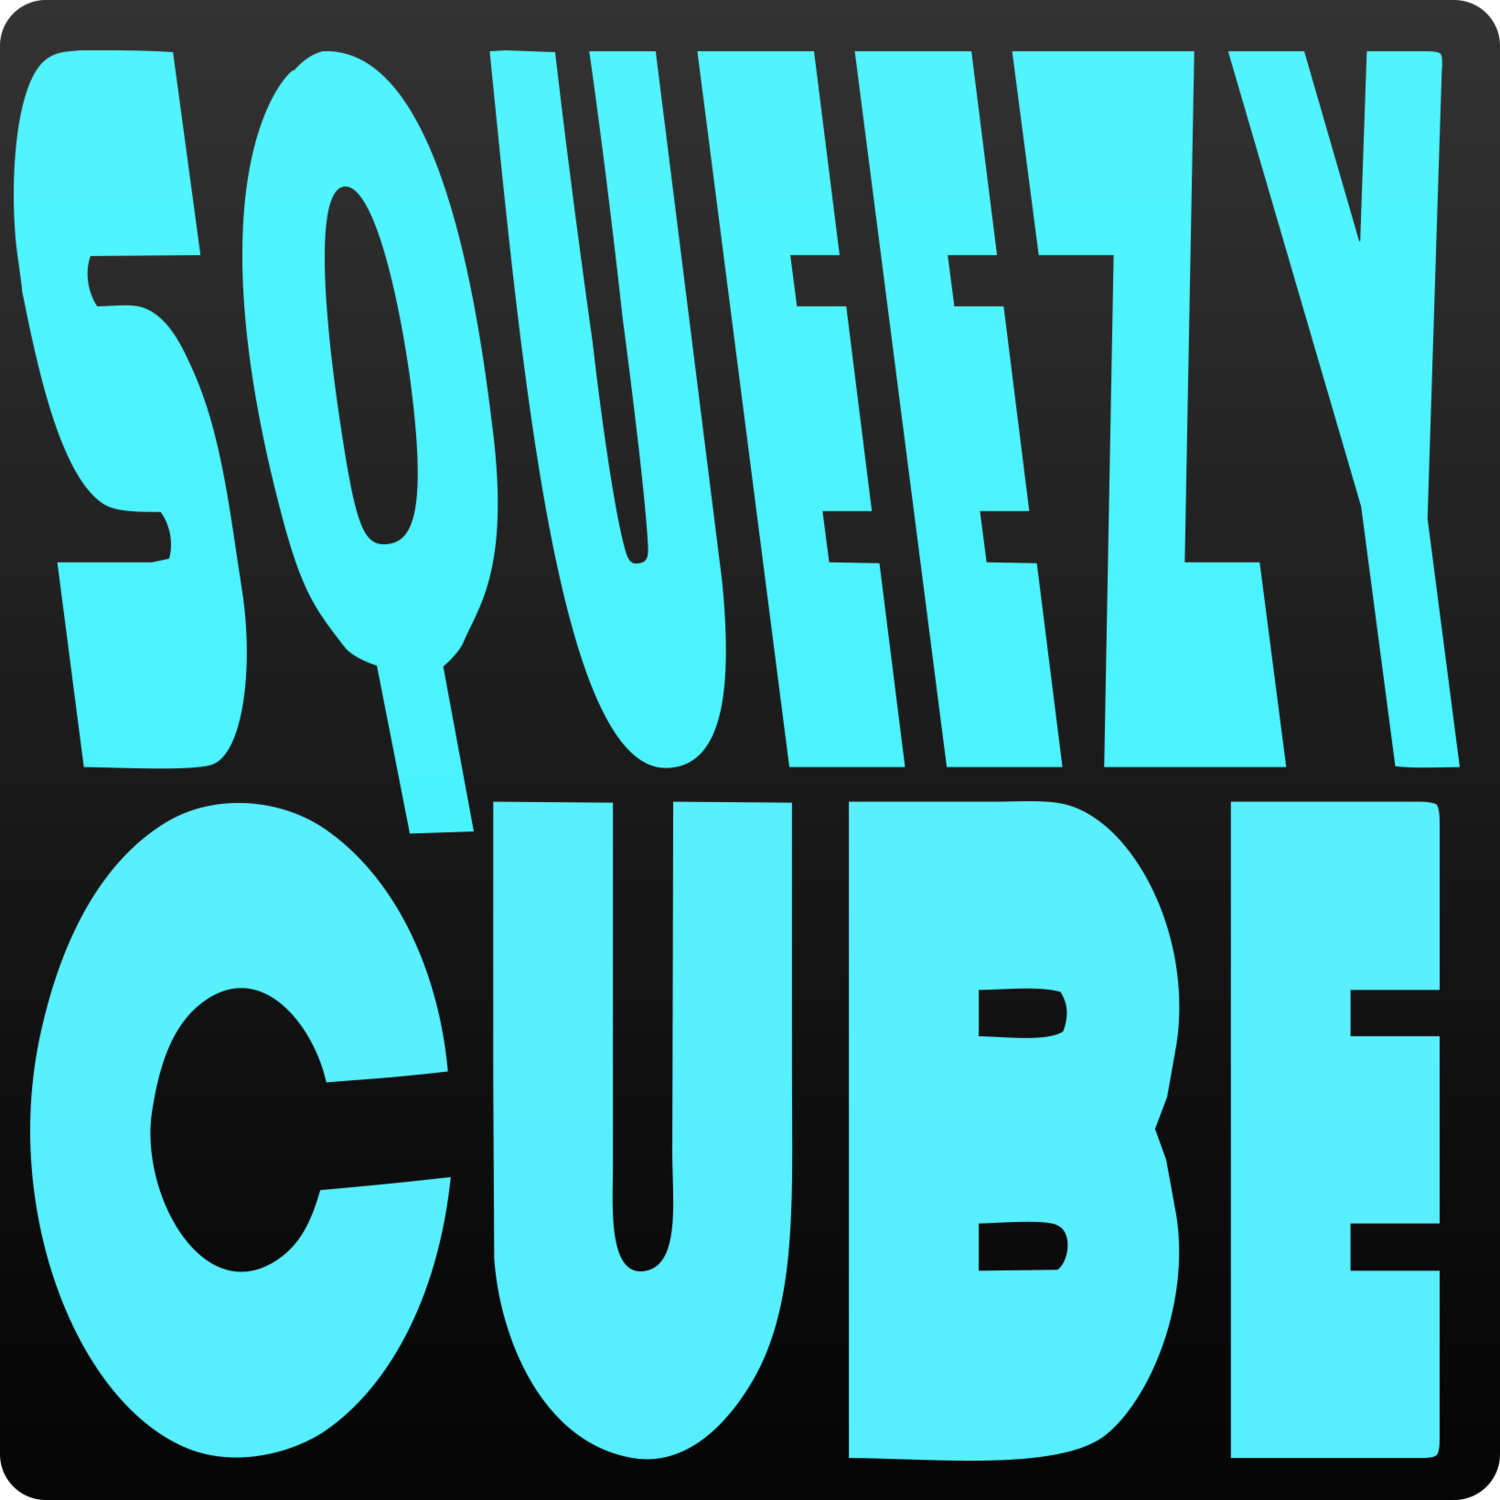 Squeezy Cube